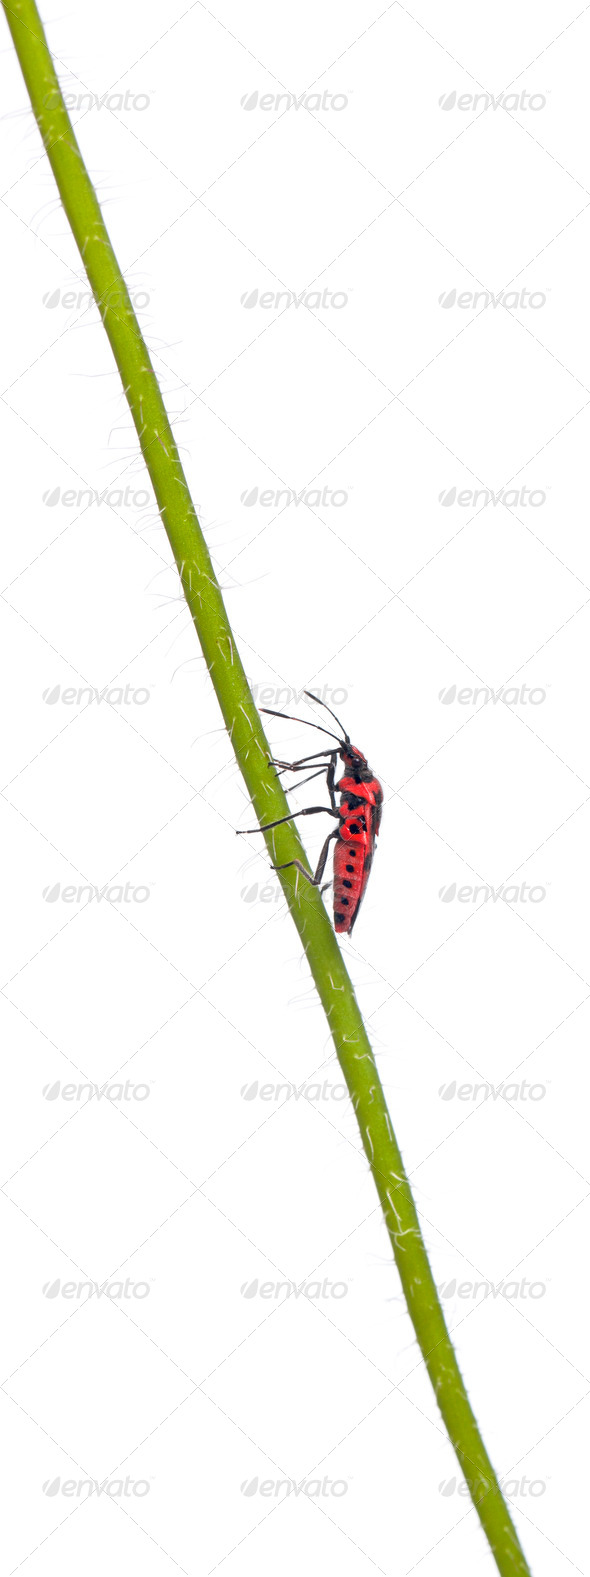 Scentless plant bug, Corizus hyoscyami, on poppy stem in front of white background - Stock Photo - Images